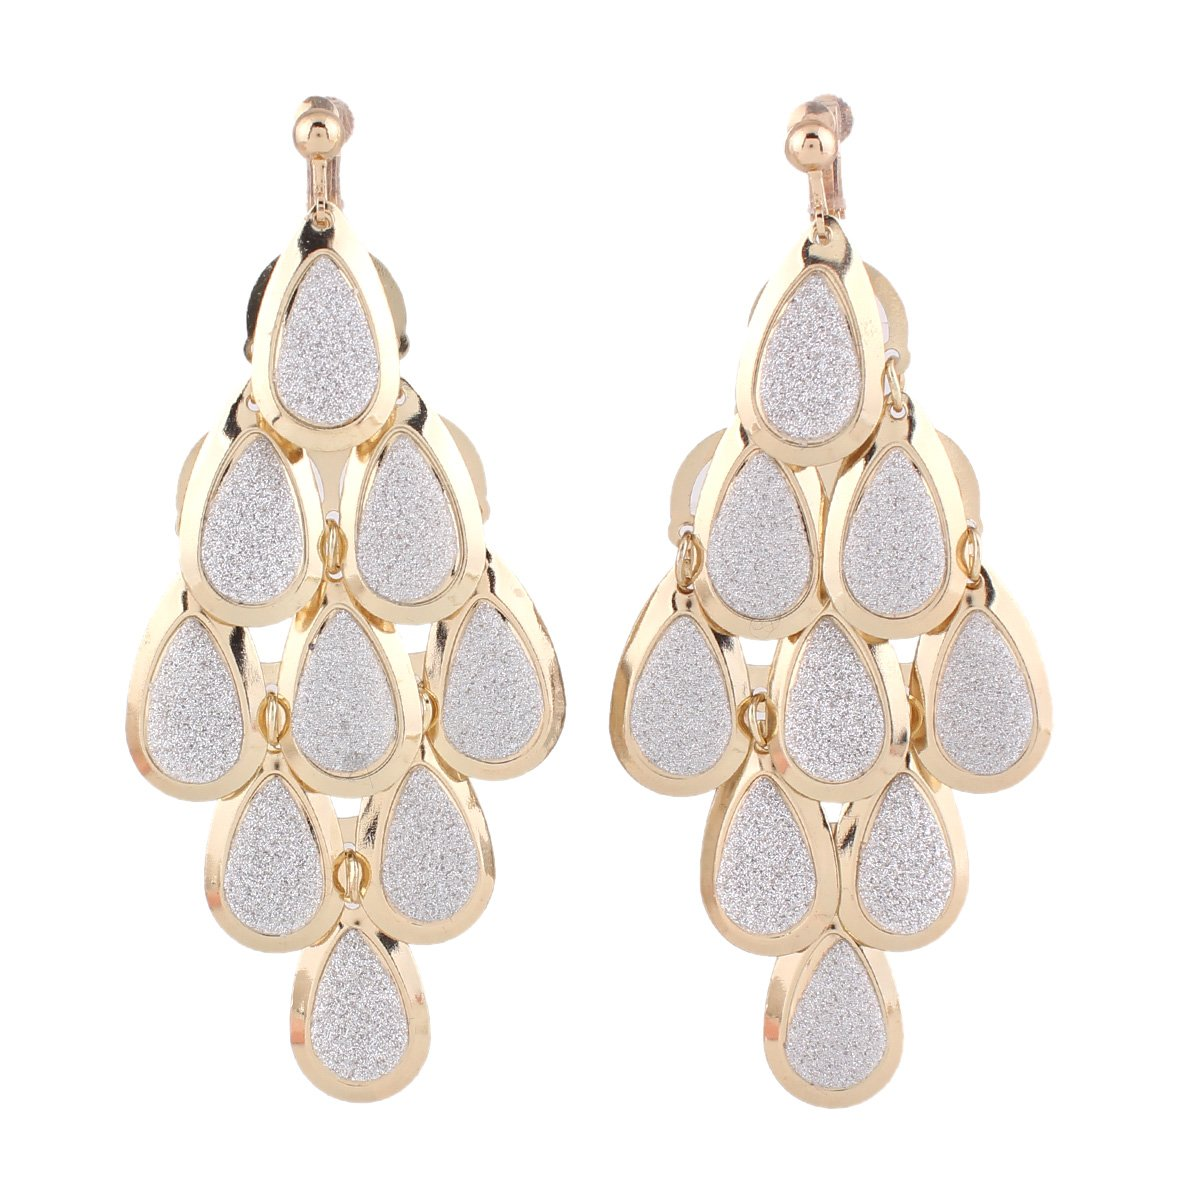 Grace Jun New Handmade Multi-layer Dangle Drop Earrings and Clip on Earrings No Pierced for Women (Gold Clip-on 2)